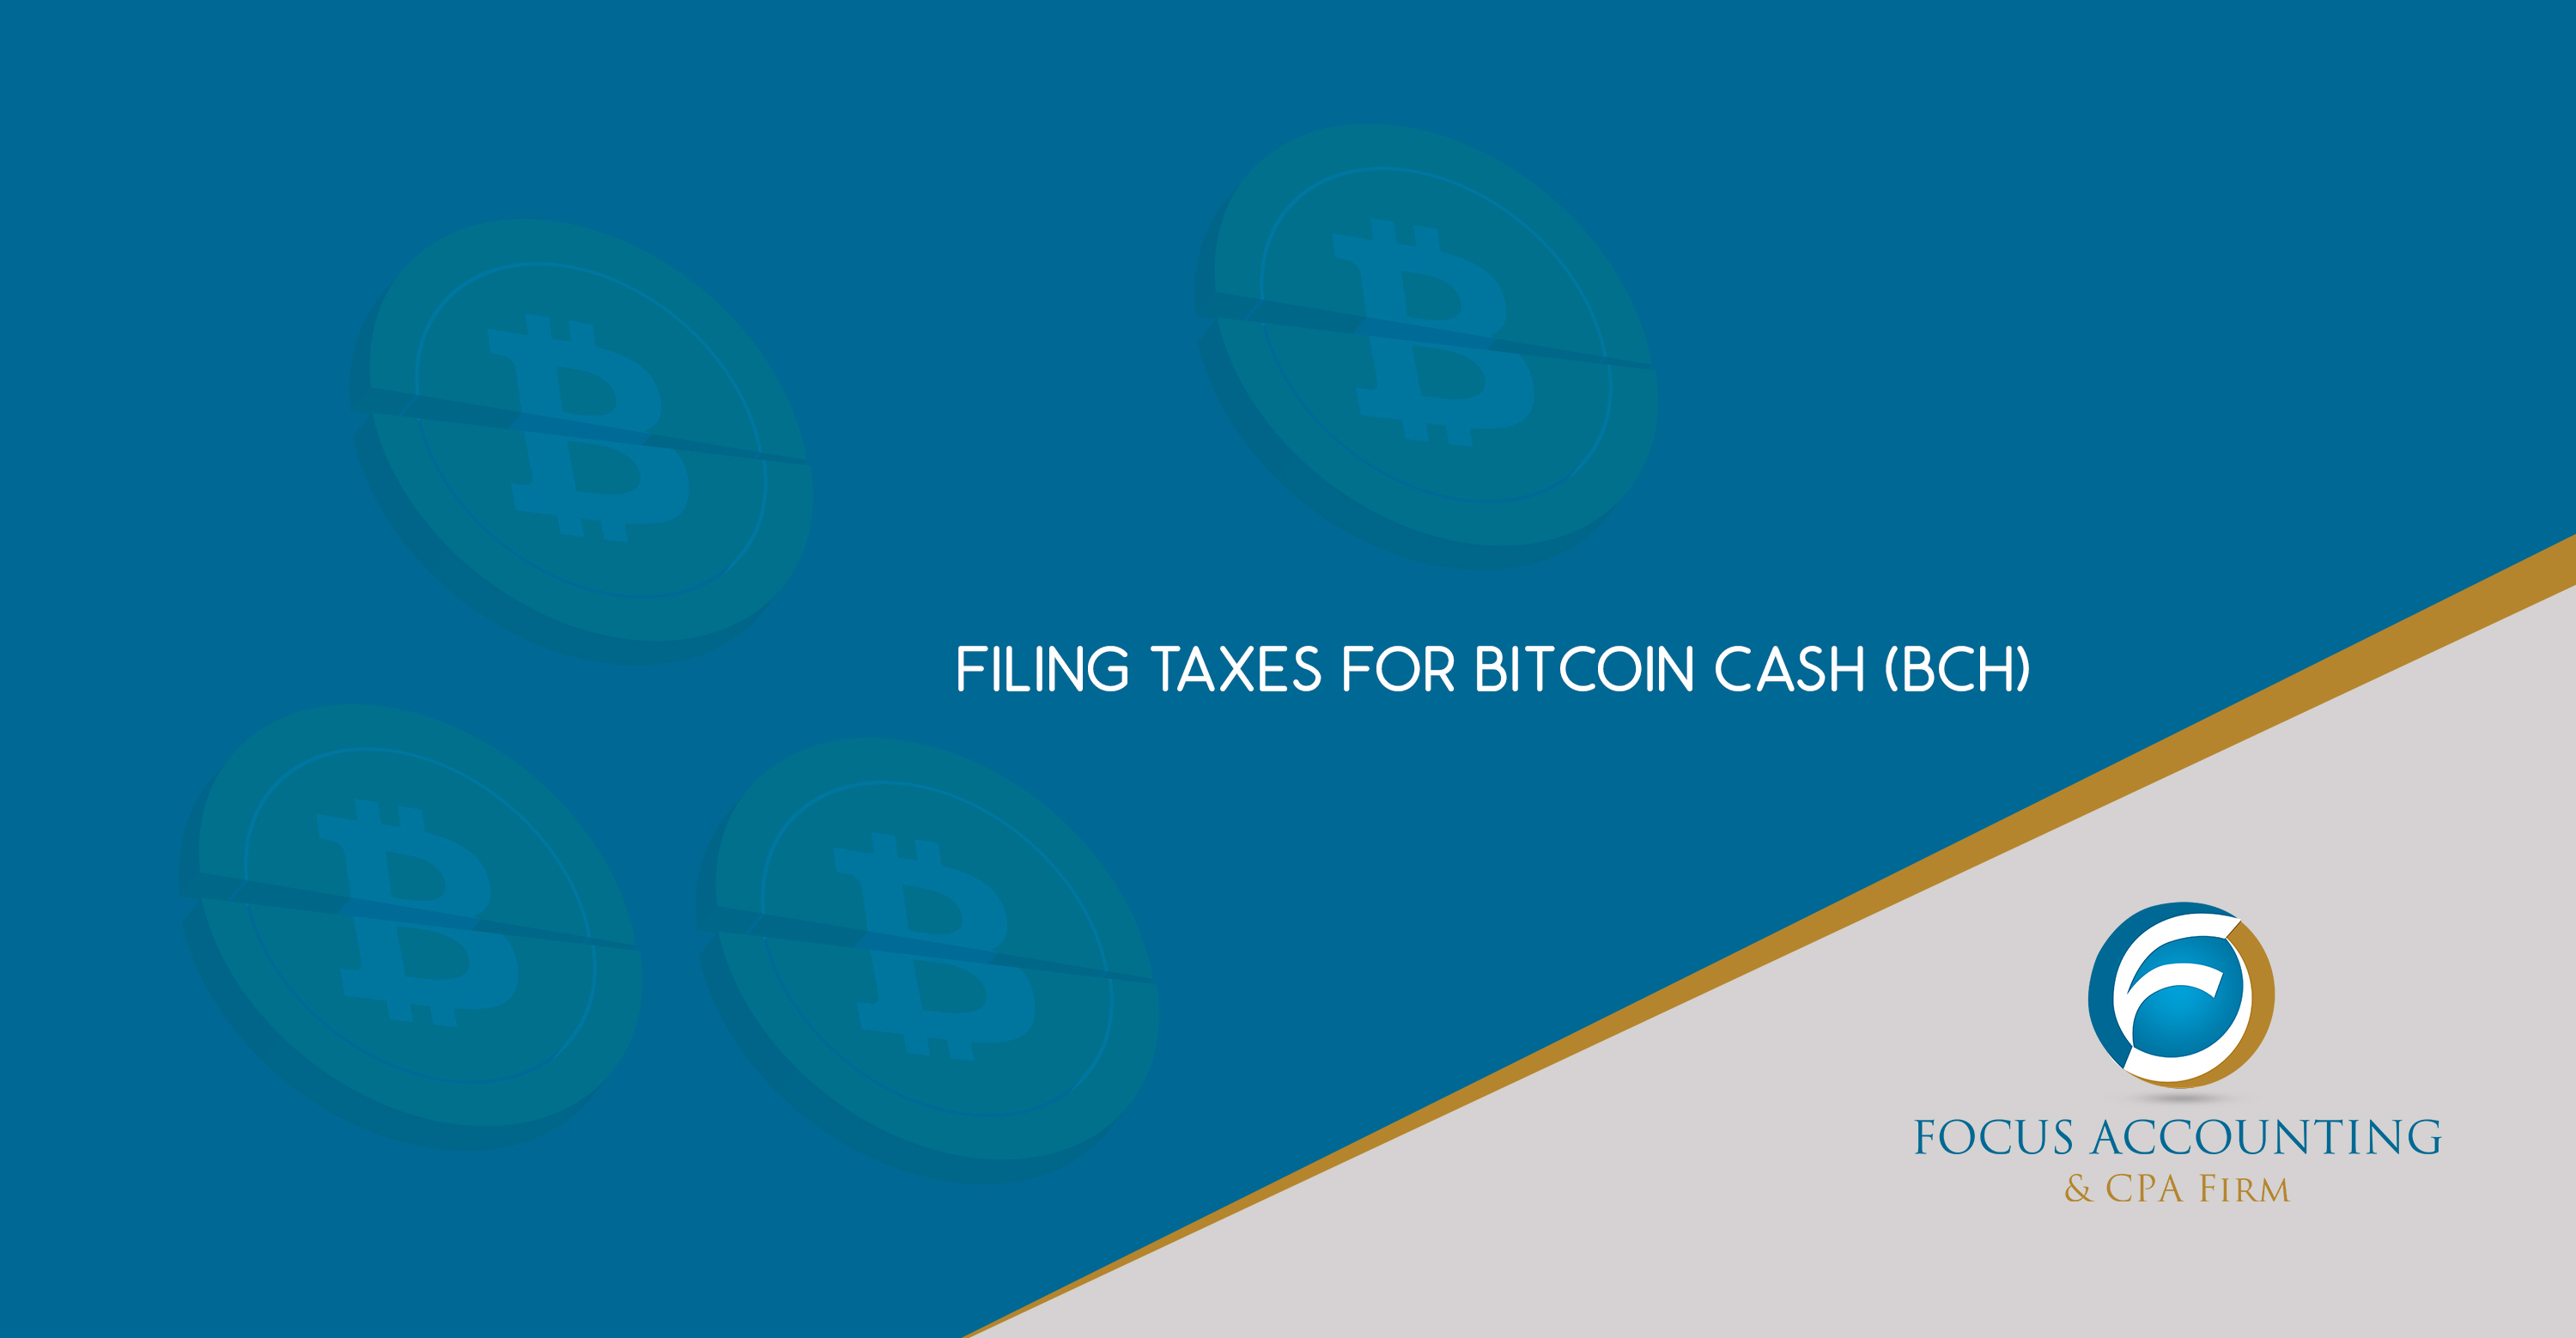 Filing Taxes for Bitcoin Cash